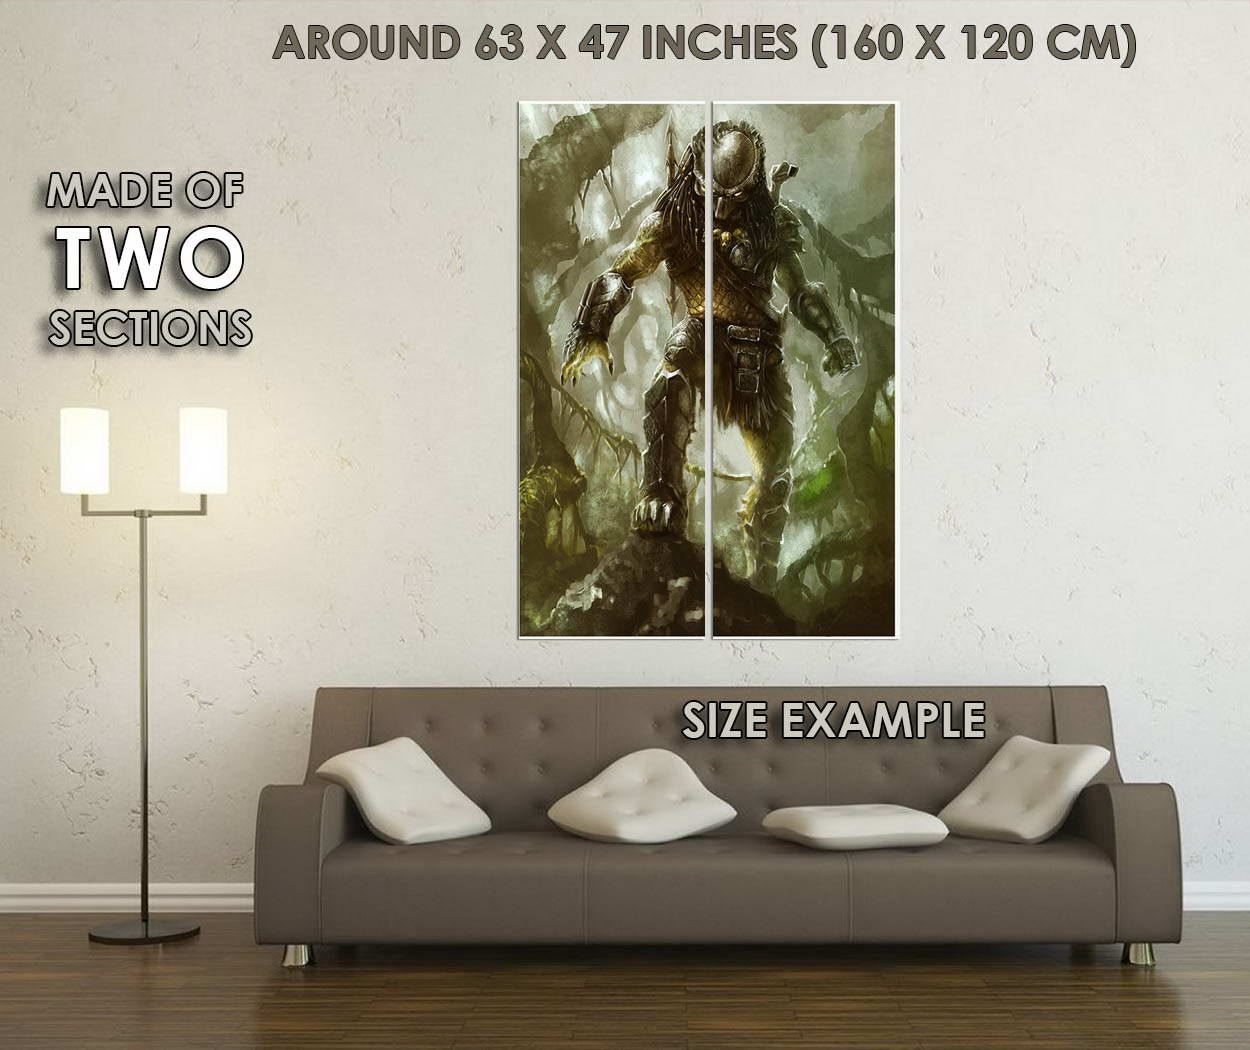 10427-Alien-vs-Predator-3-Movie-Art-LAMINATED-POSTER-CA thumbnail 6